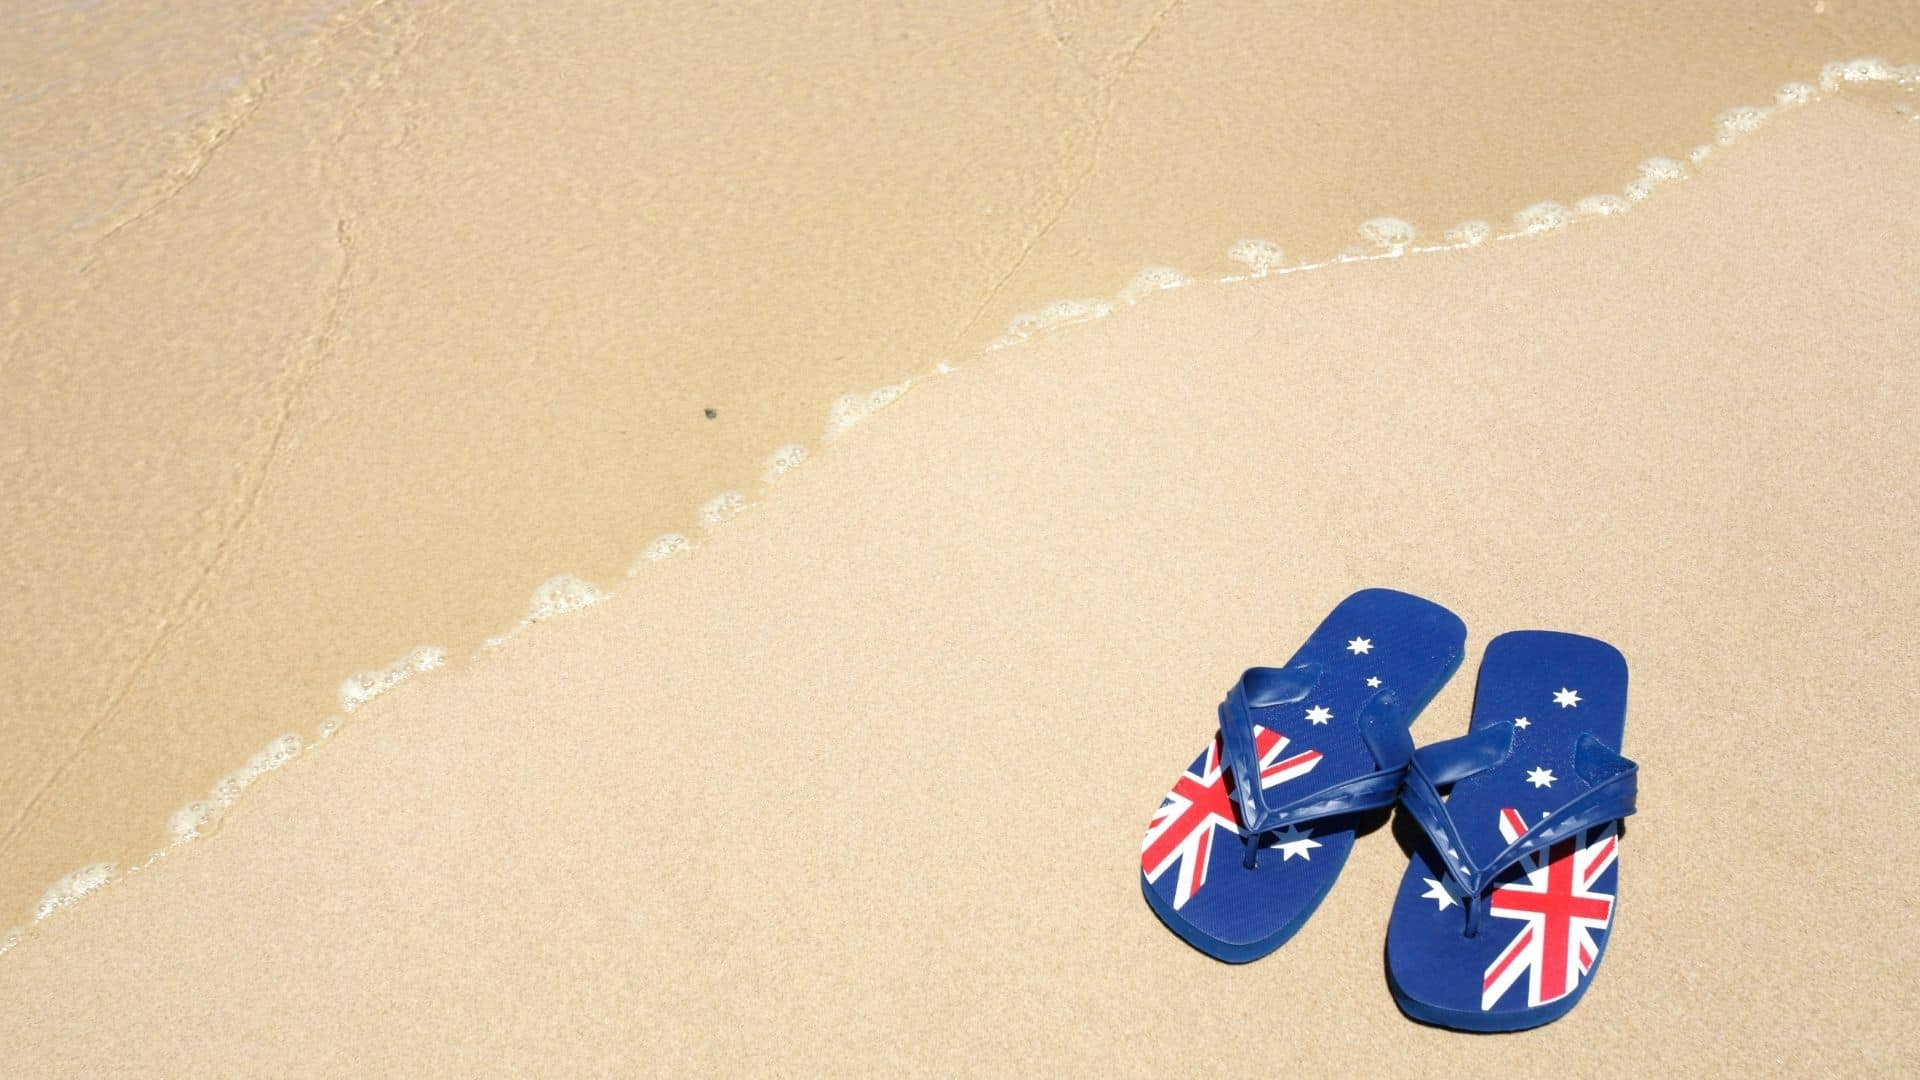 Is it illegal to drive in thongs in Australia?